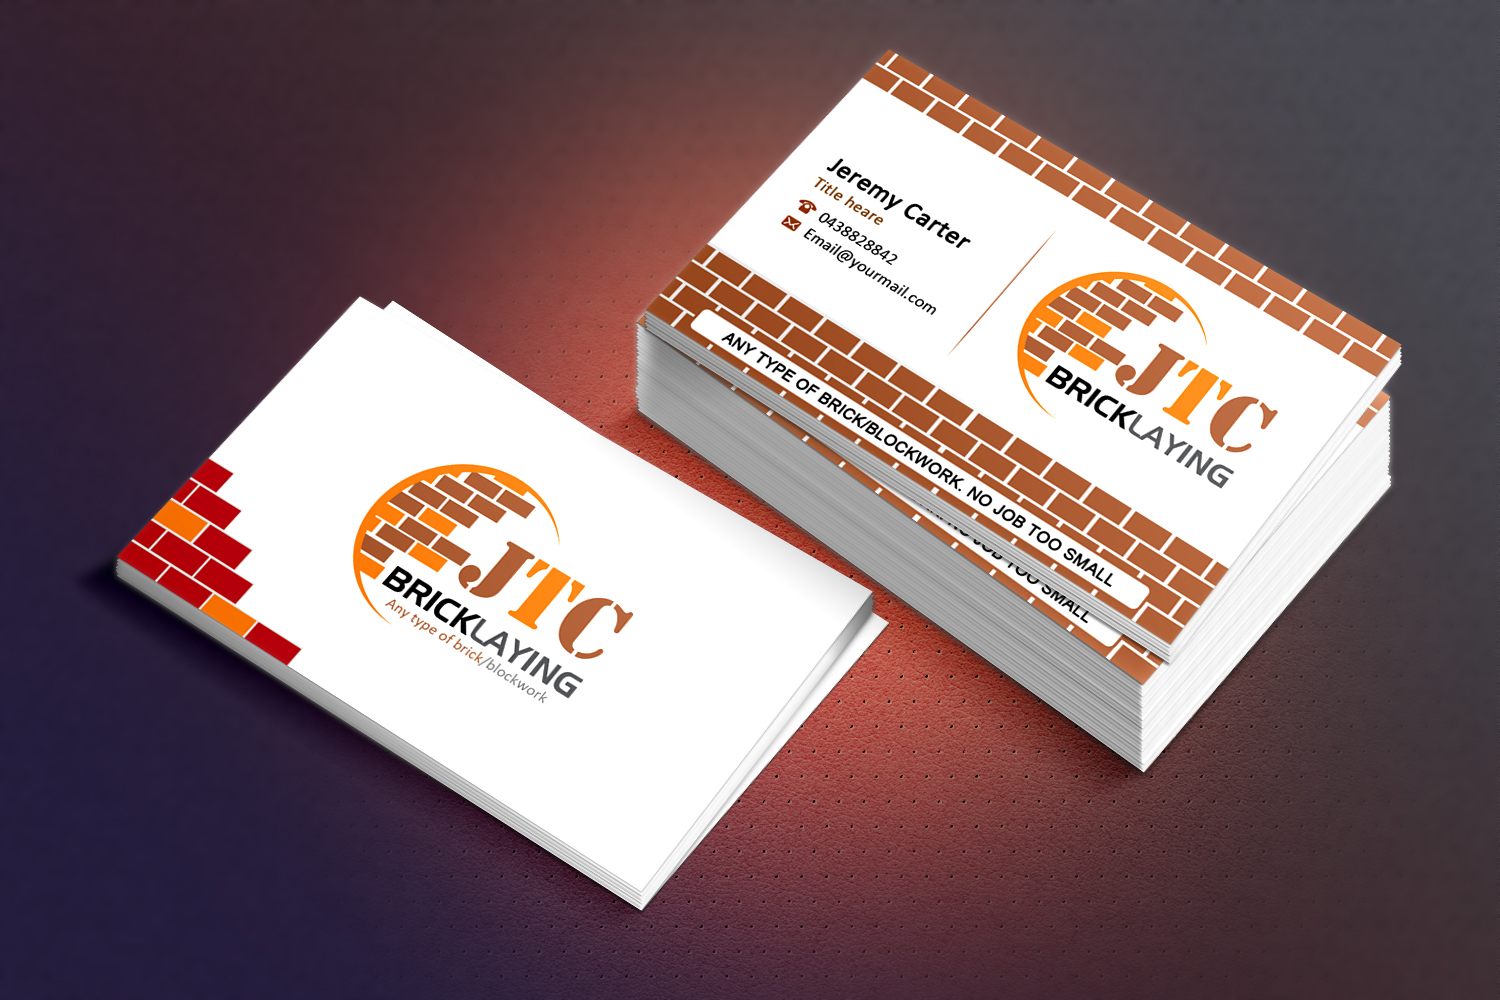 Business Card Design for Jeremy Carter by Sandaruwan | Design #5055484